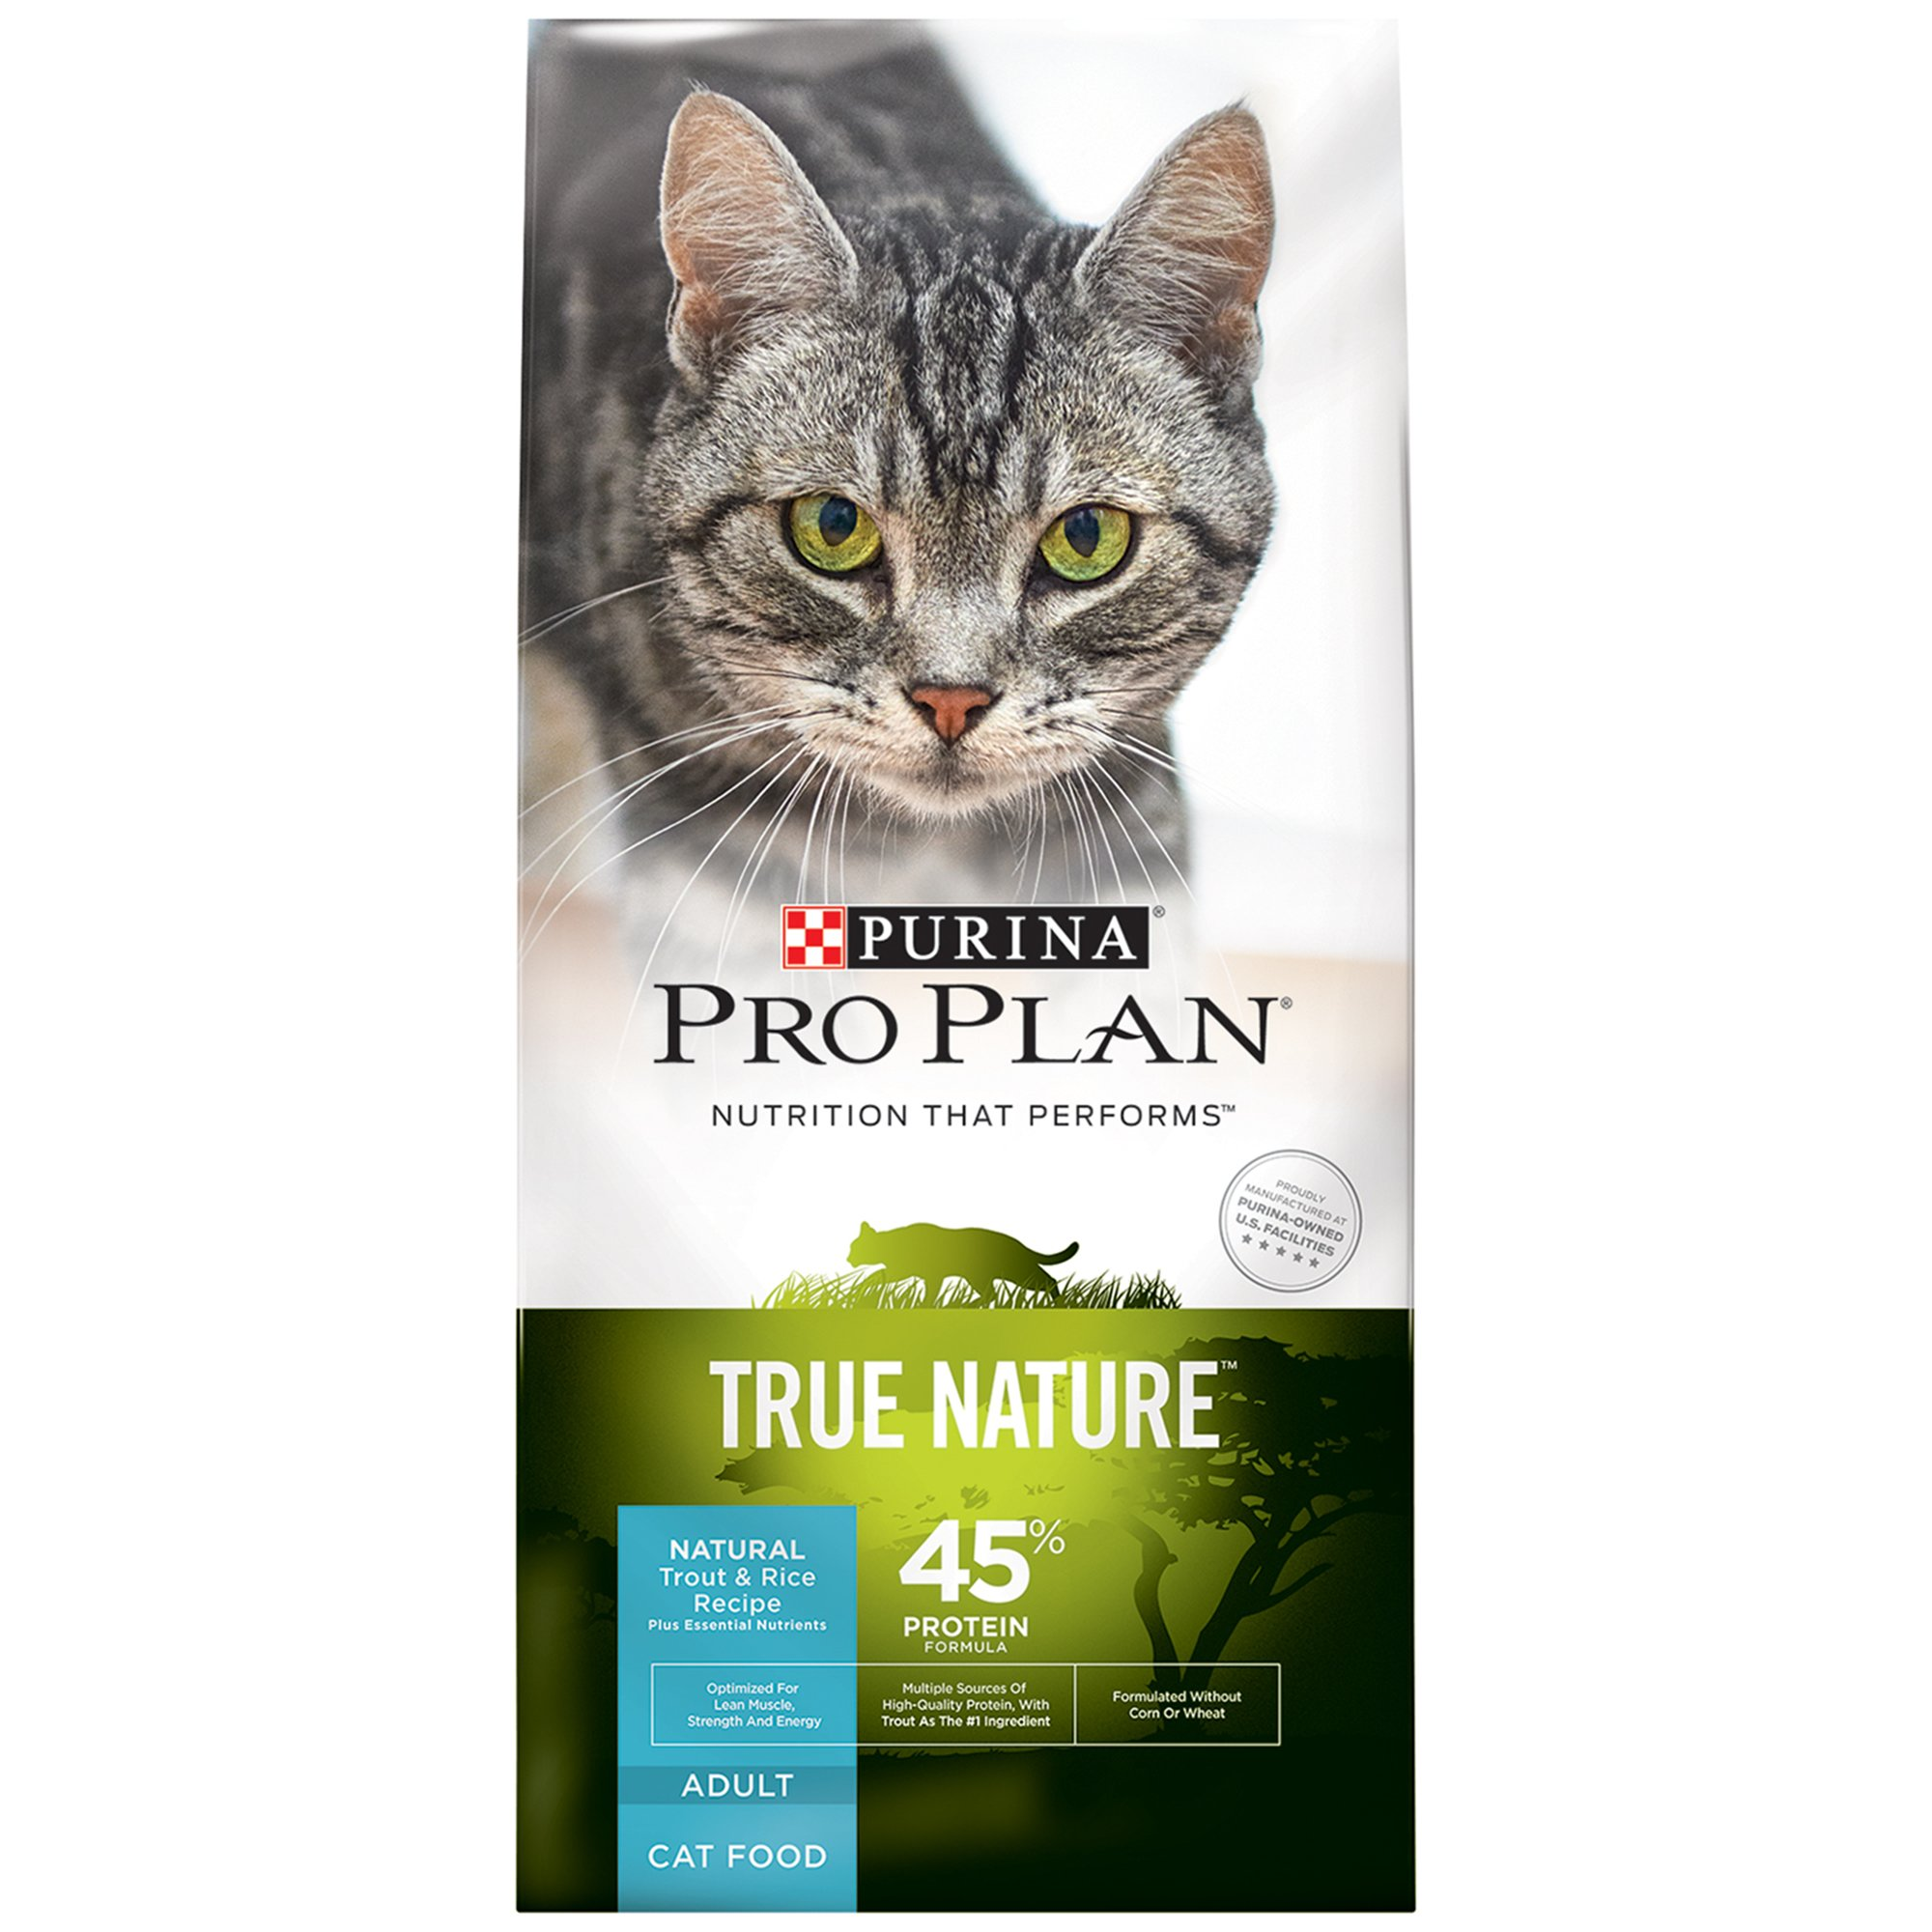 Pro Plan True Nature Trout & Rice Adult Cat Food